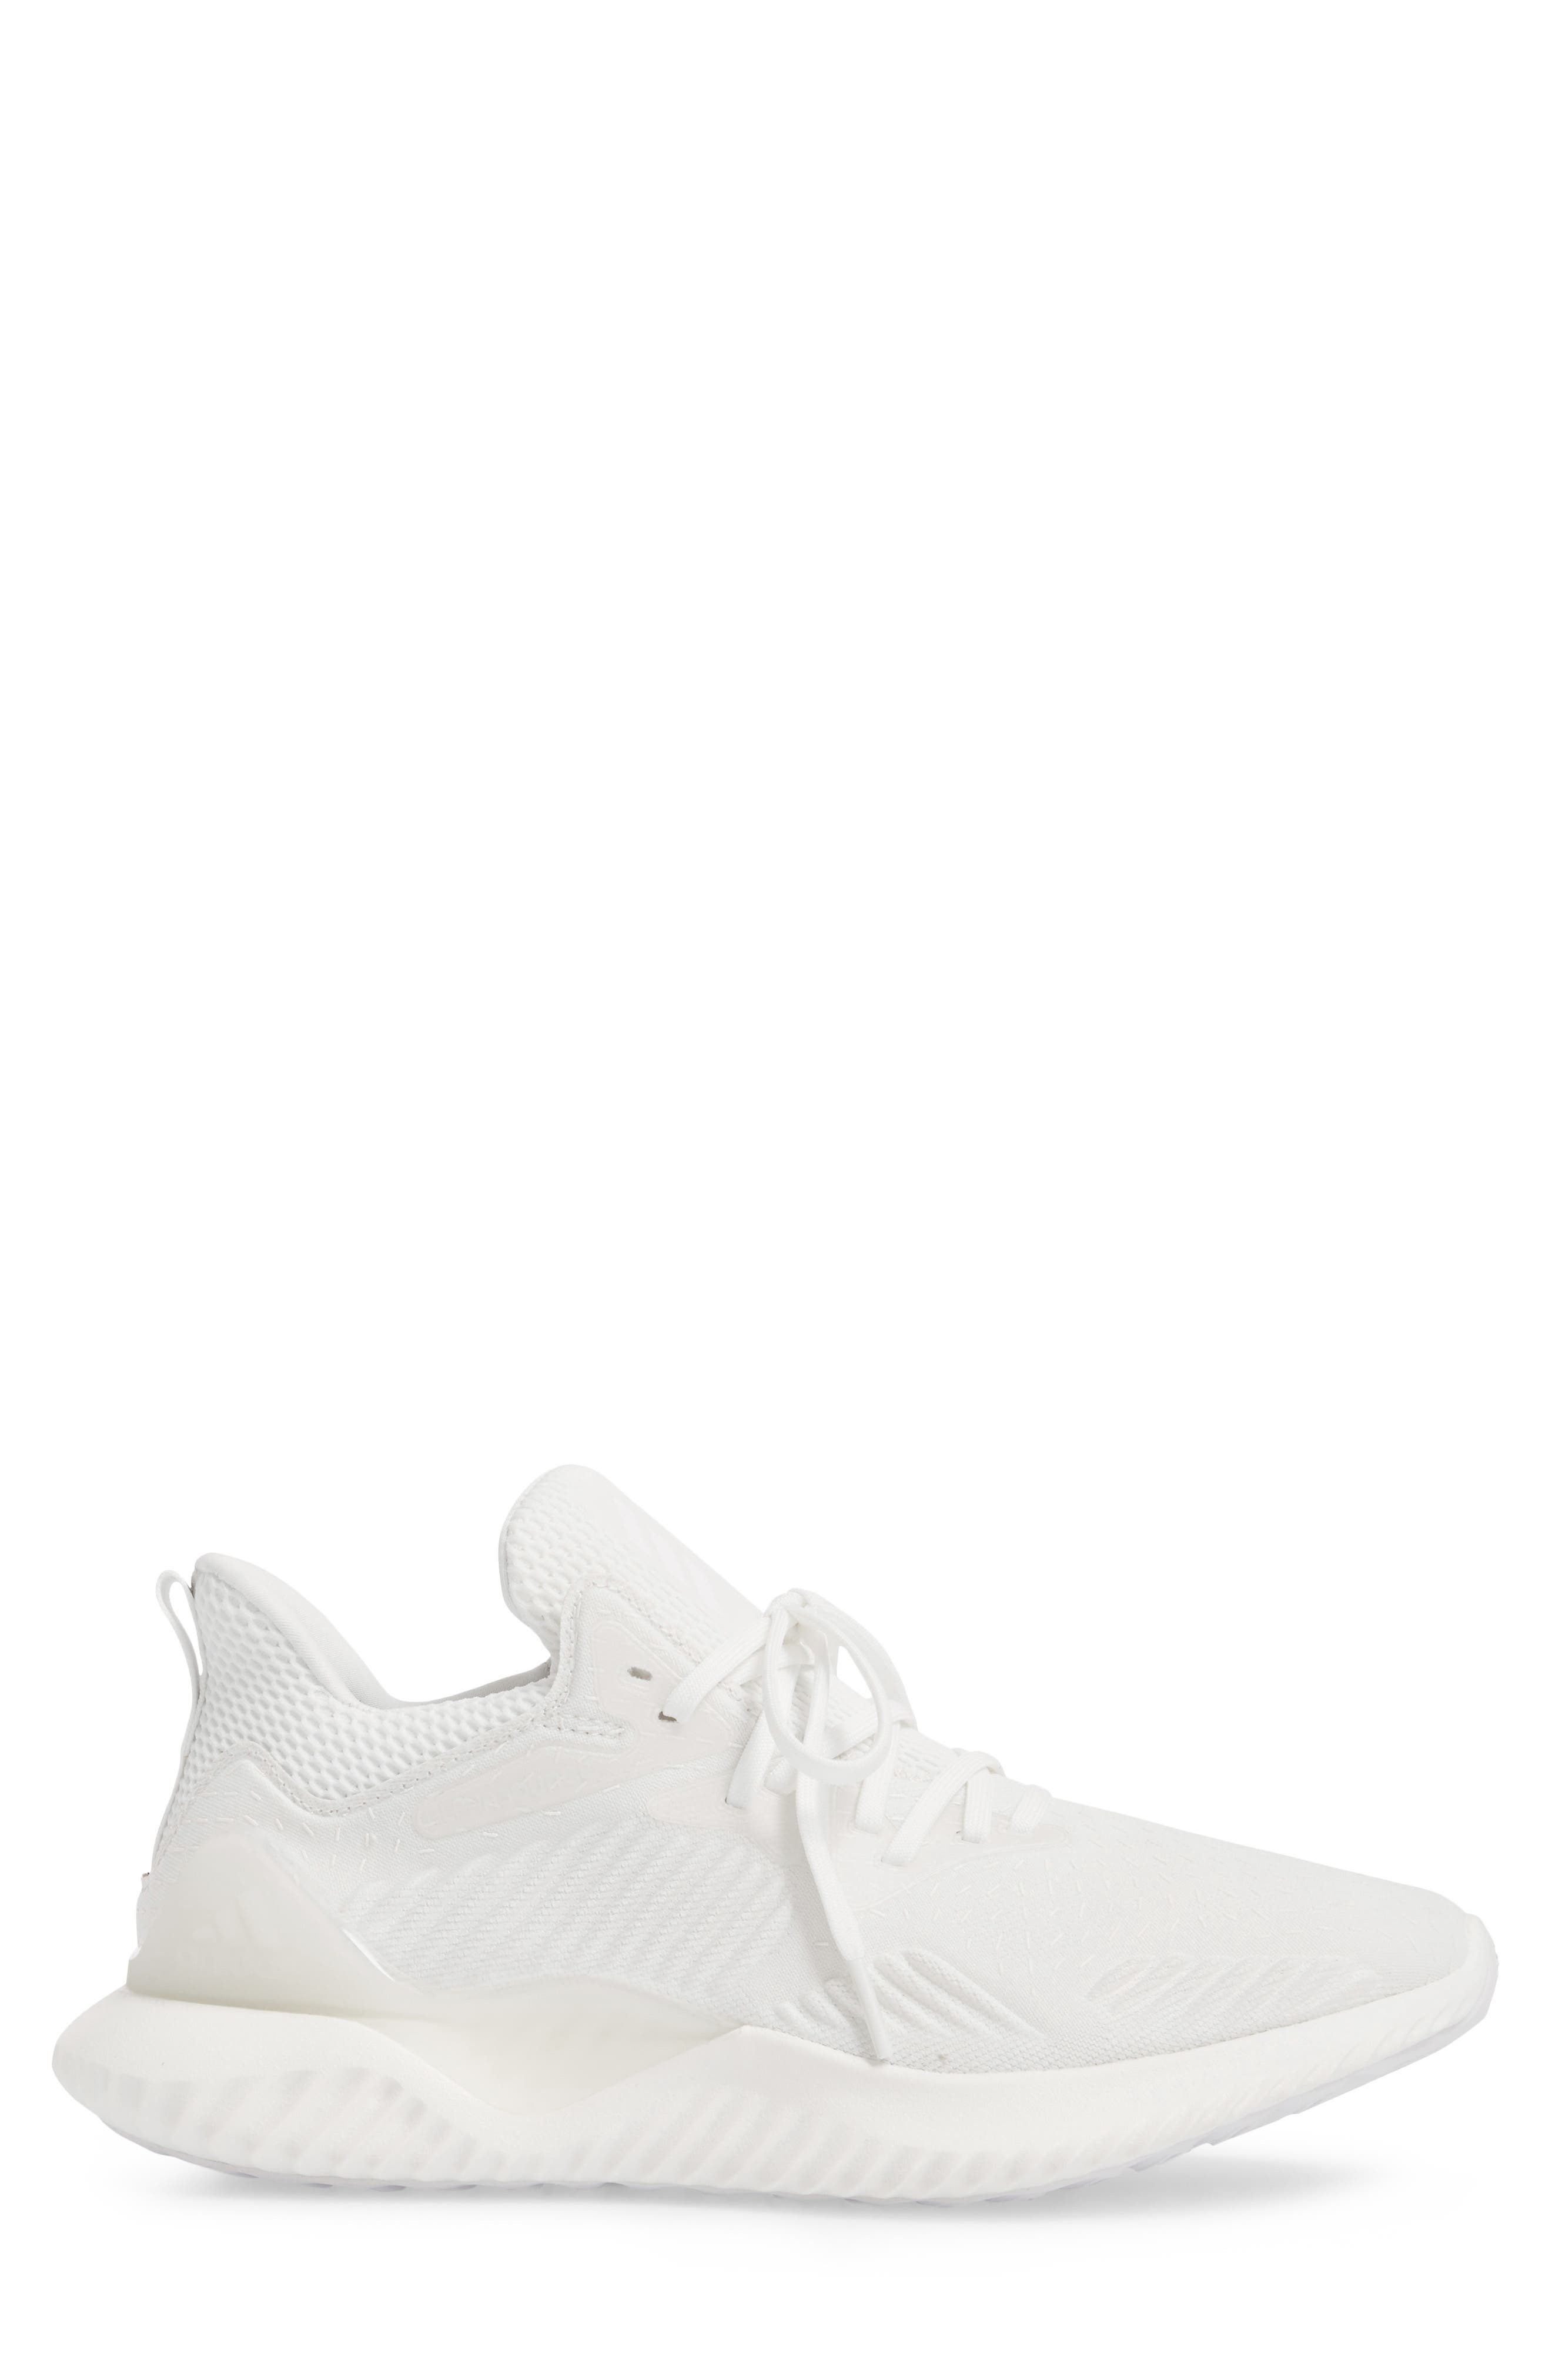 AlphaBounce Beyond Knit Running Shoe,                             Alternate thumbnail 3, color,                             Core Black/ Non-Dyed/ White